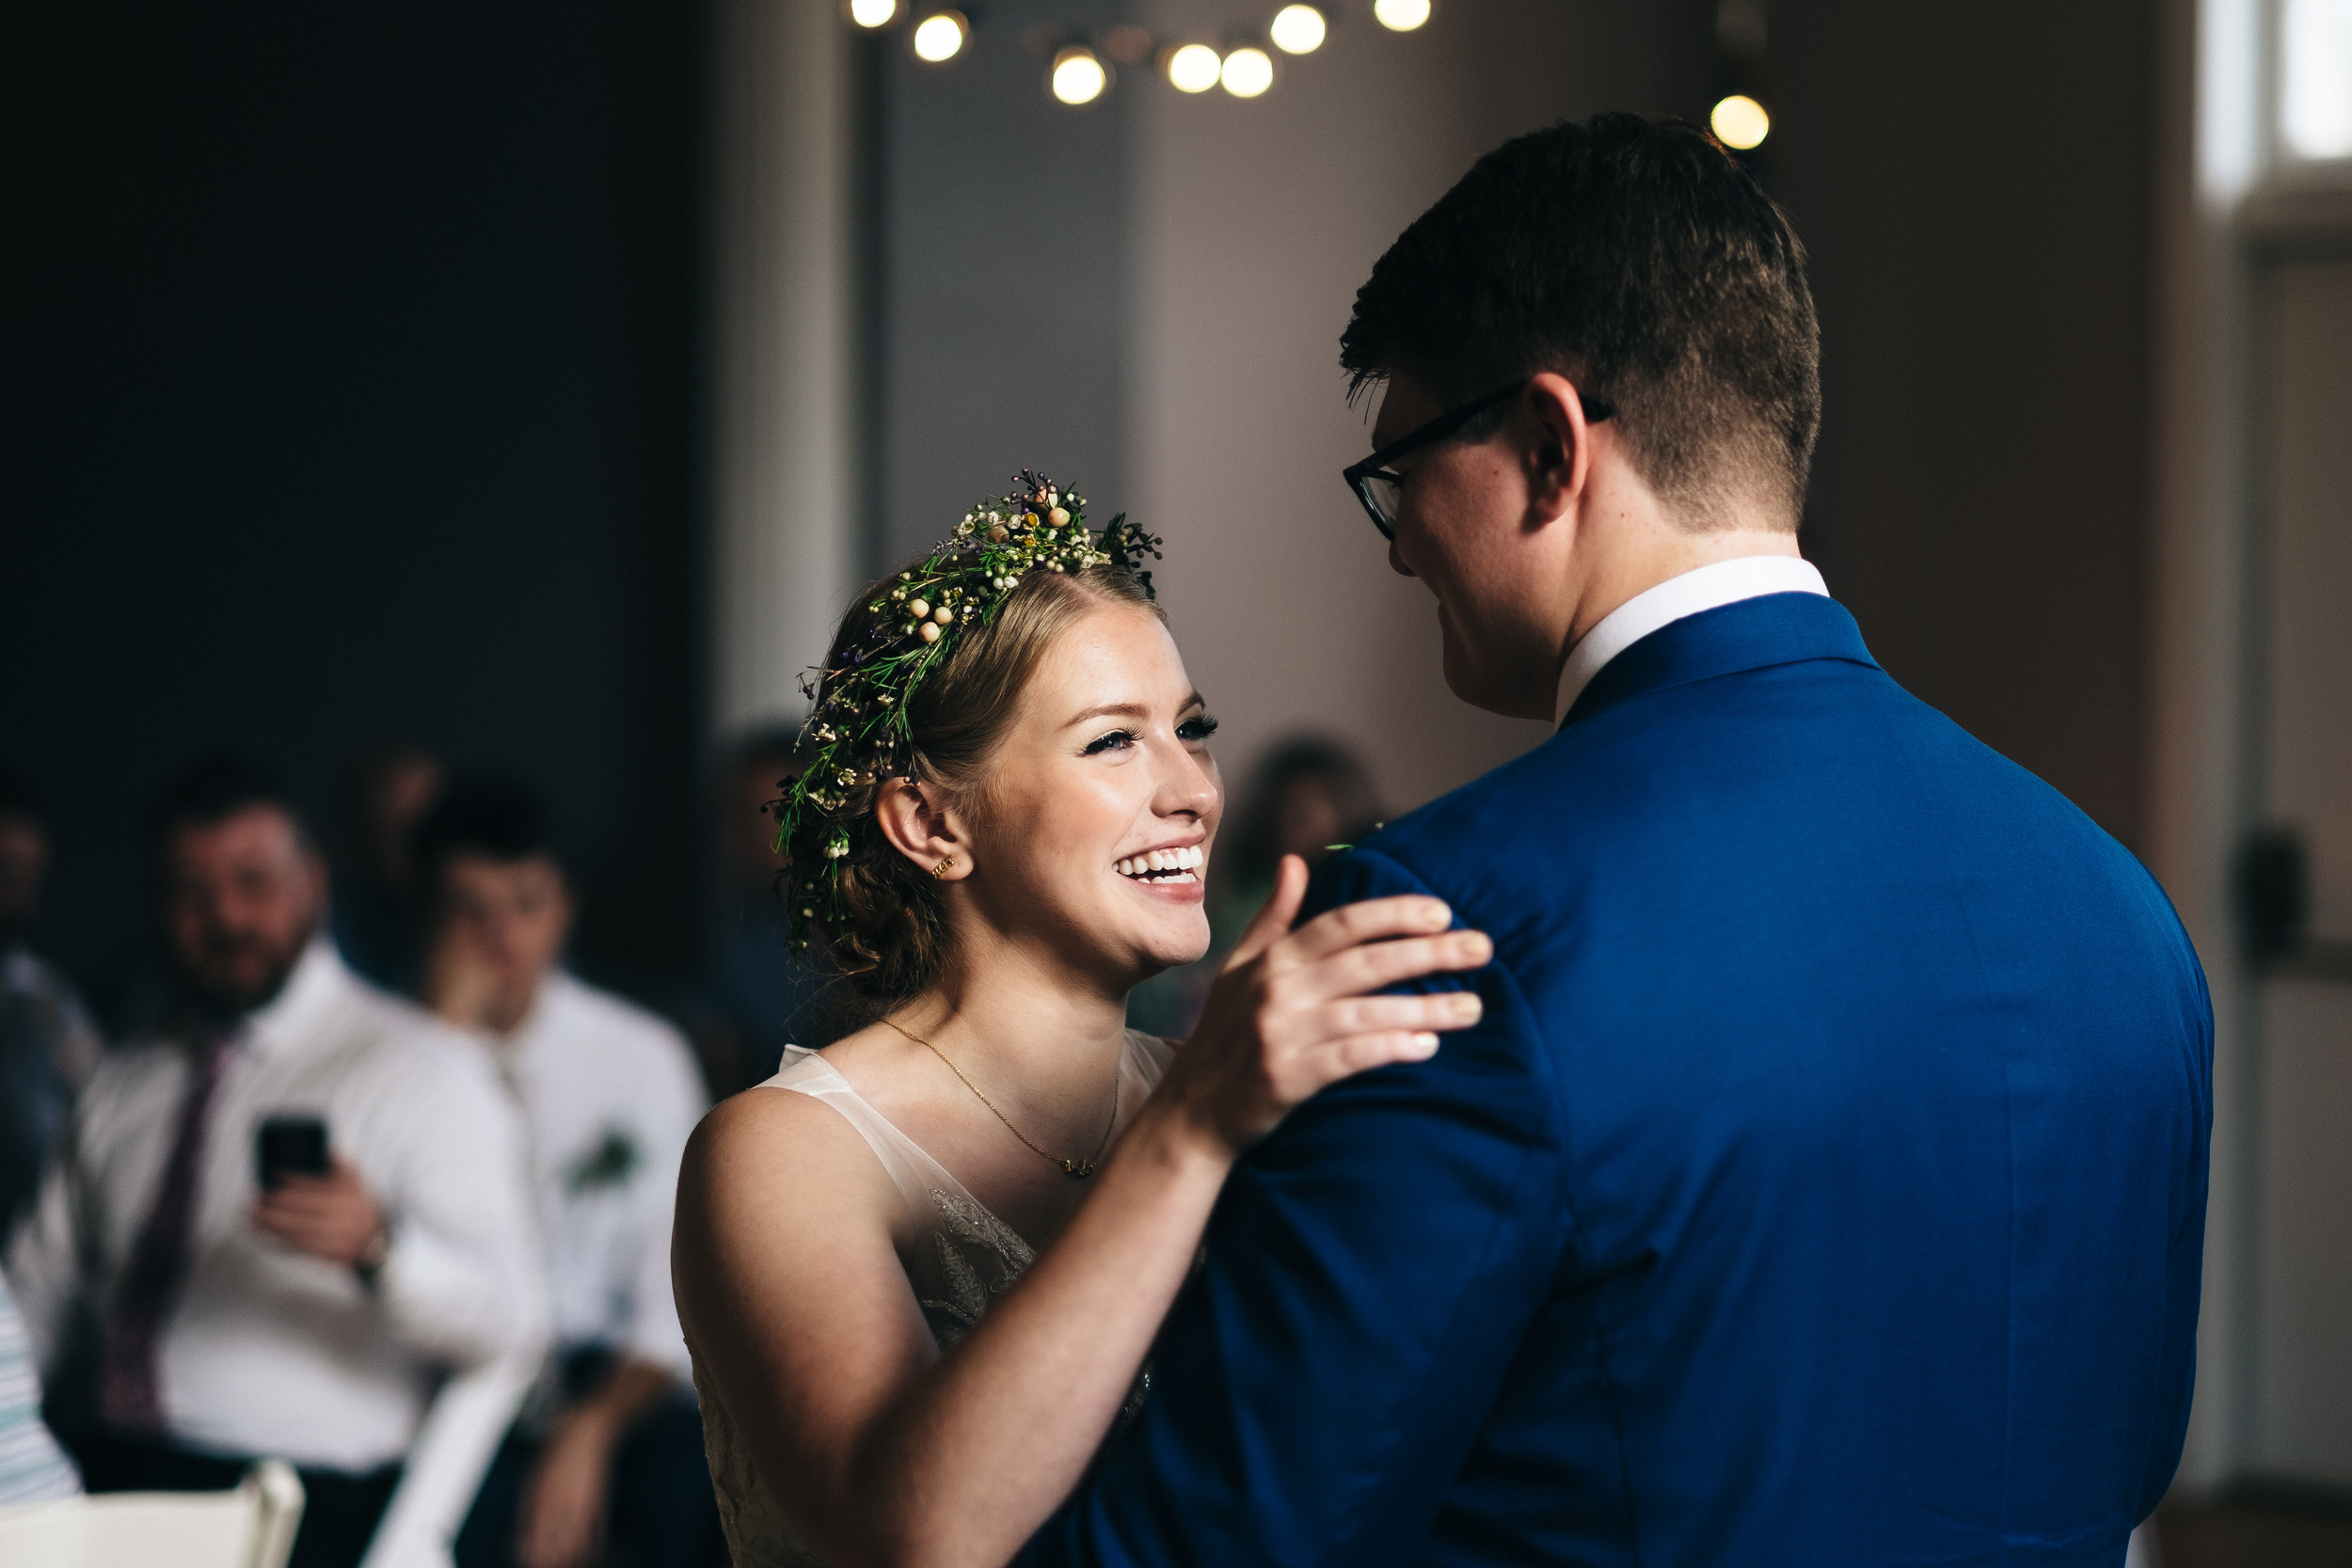 First dance between bride and groom at wedding reception.